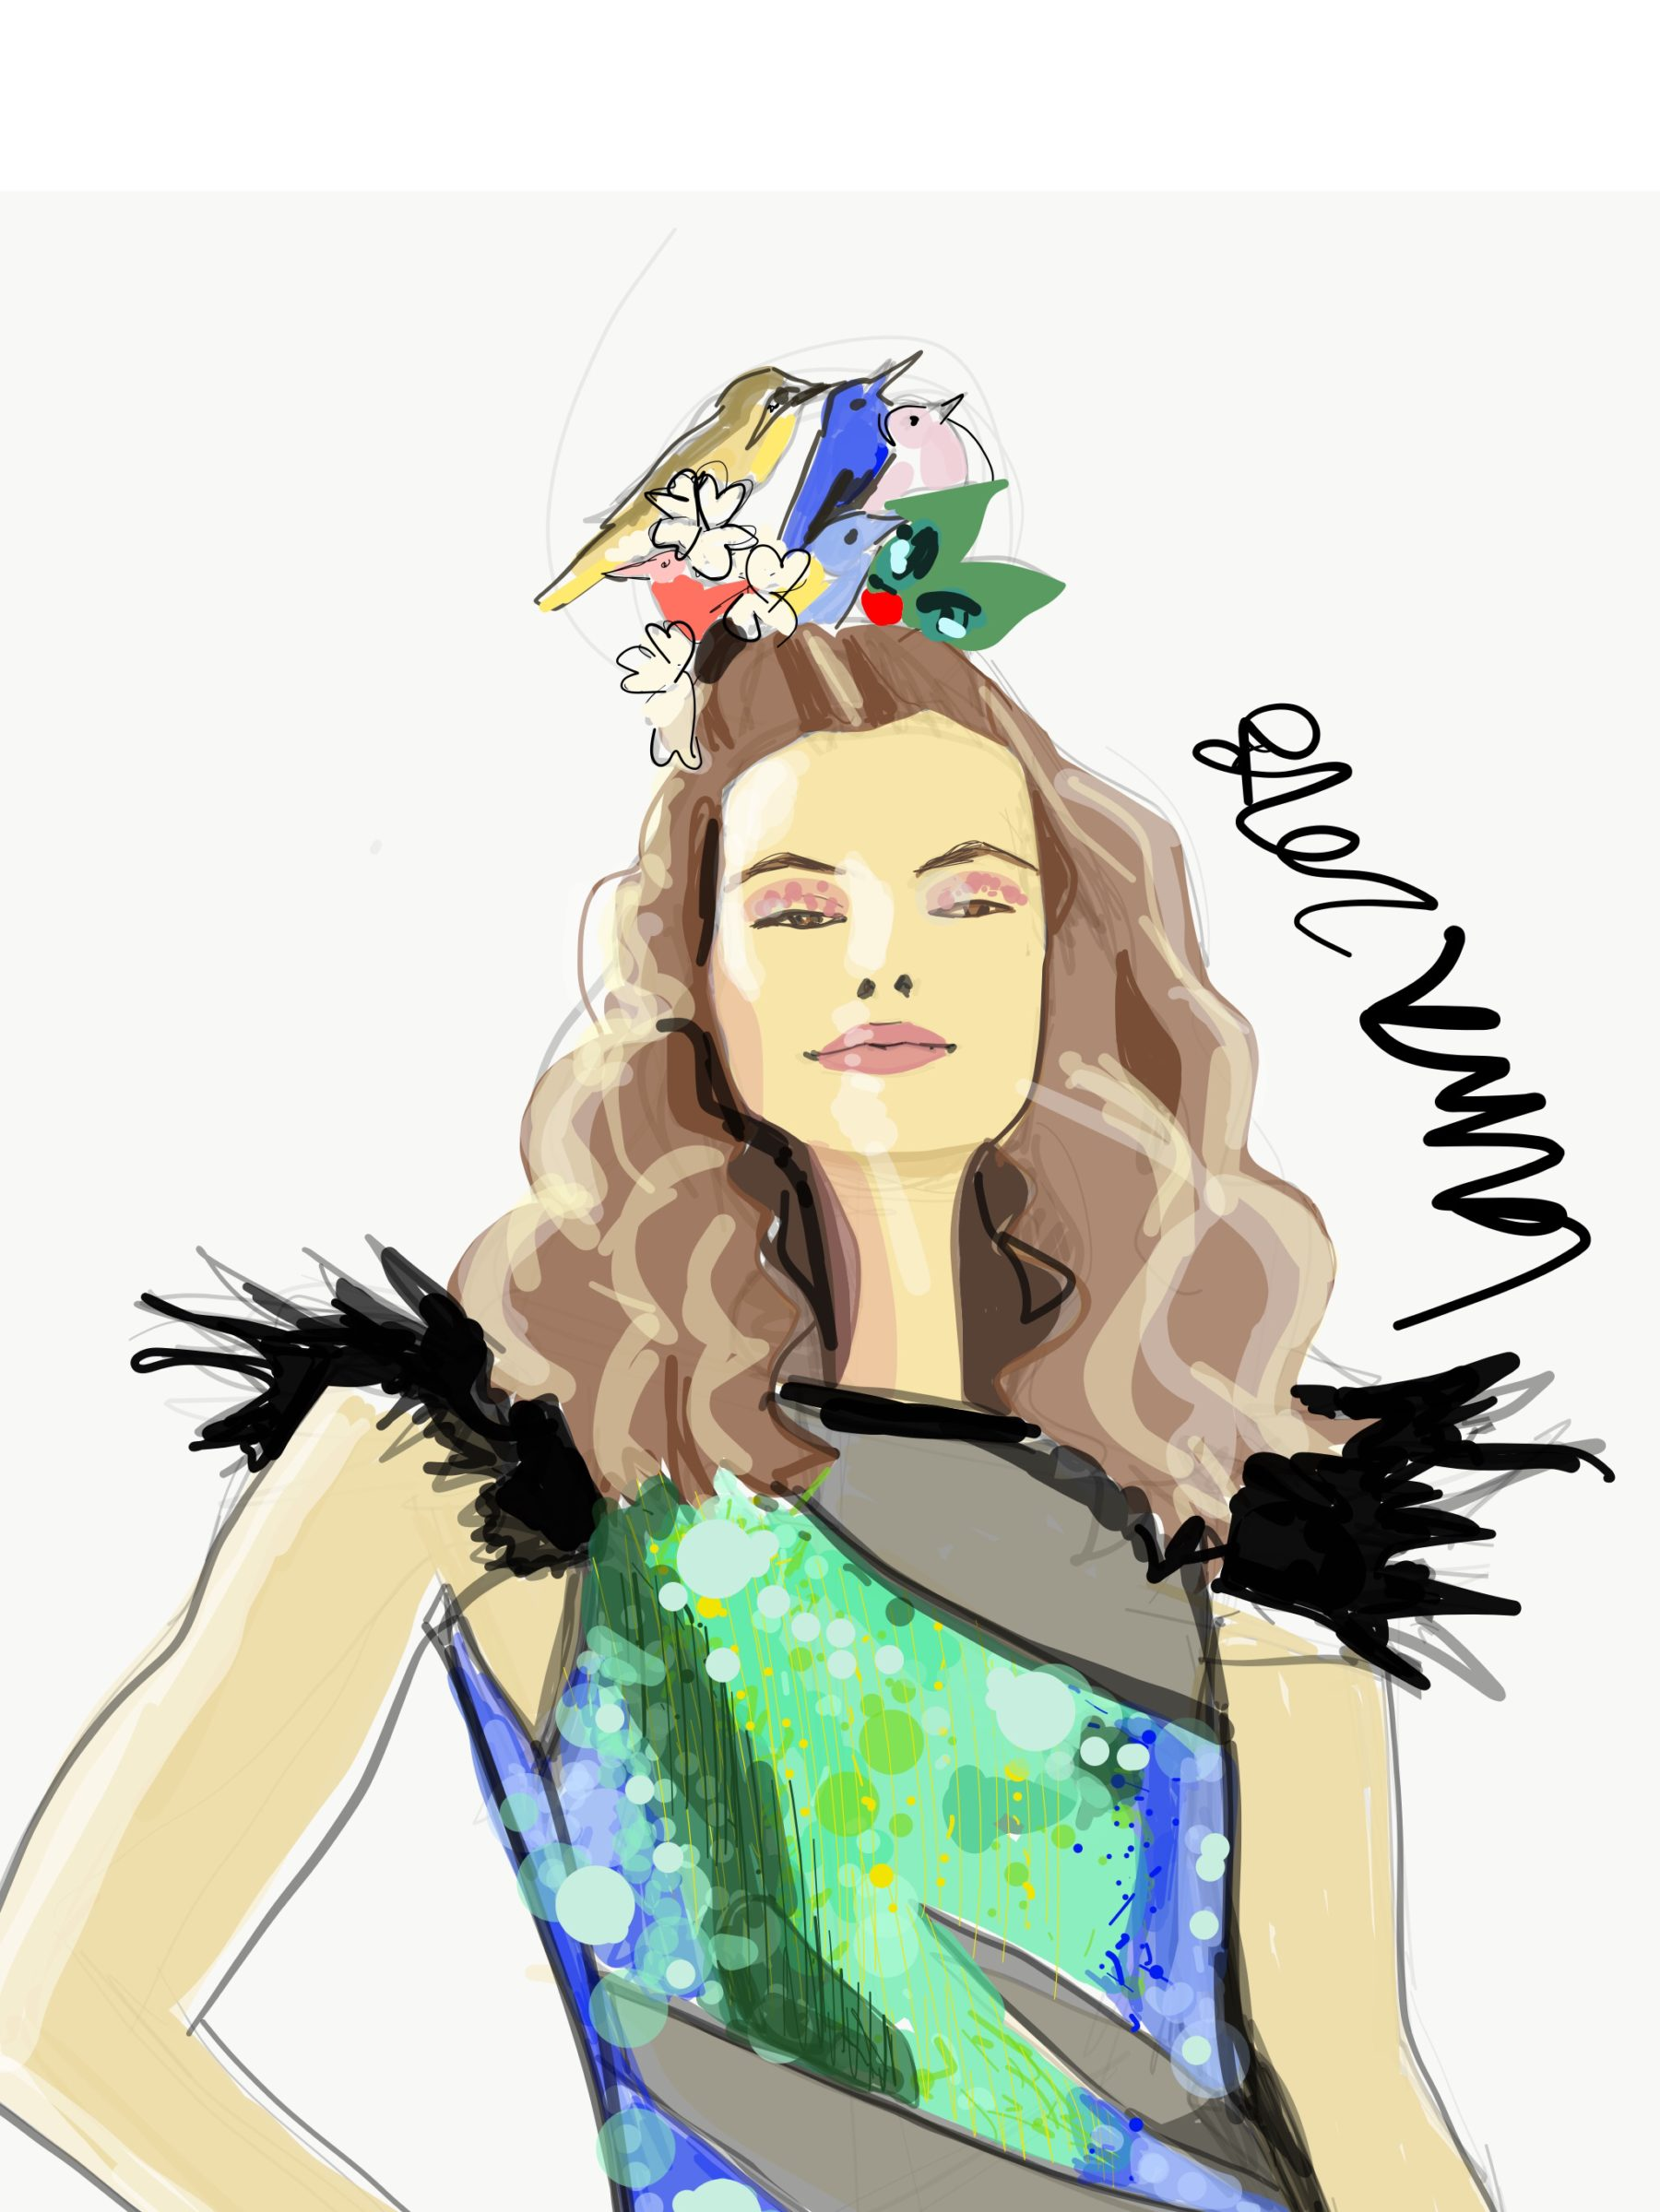 These are the 3 best apps for fashion illustration on iPad or